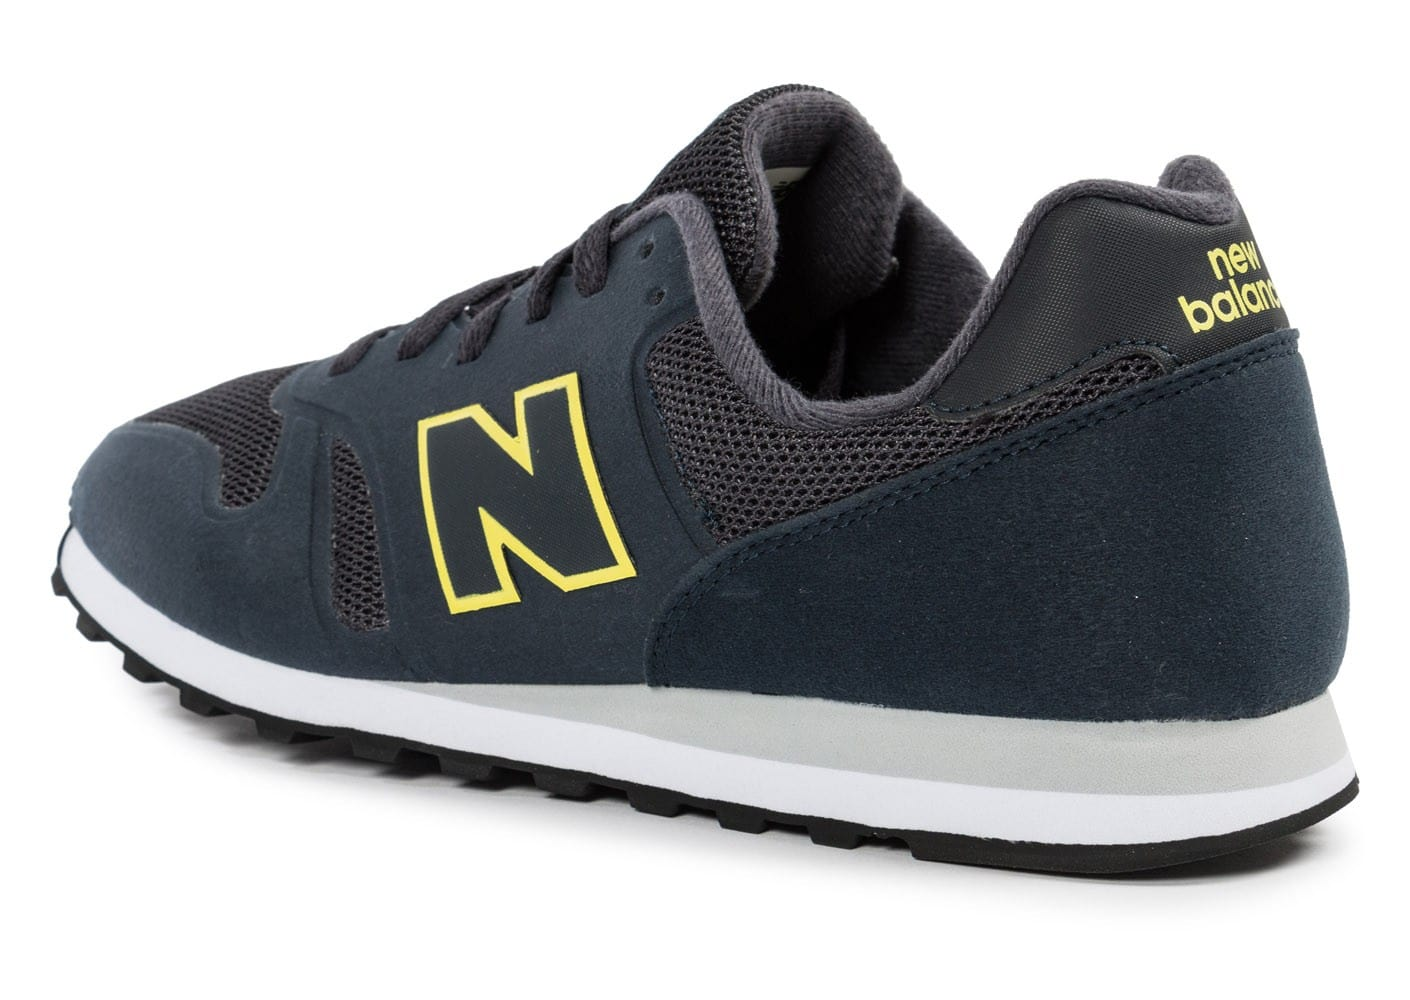 check out 5e84c 6146a 0538-chaussures-new-balance-md373-ny-bleu-marine-vue-arriere 1.jpg